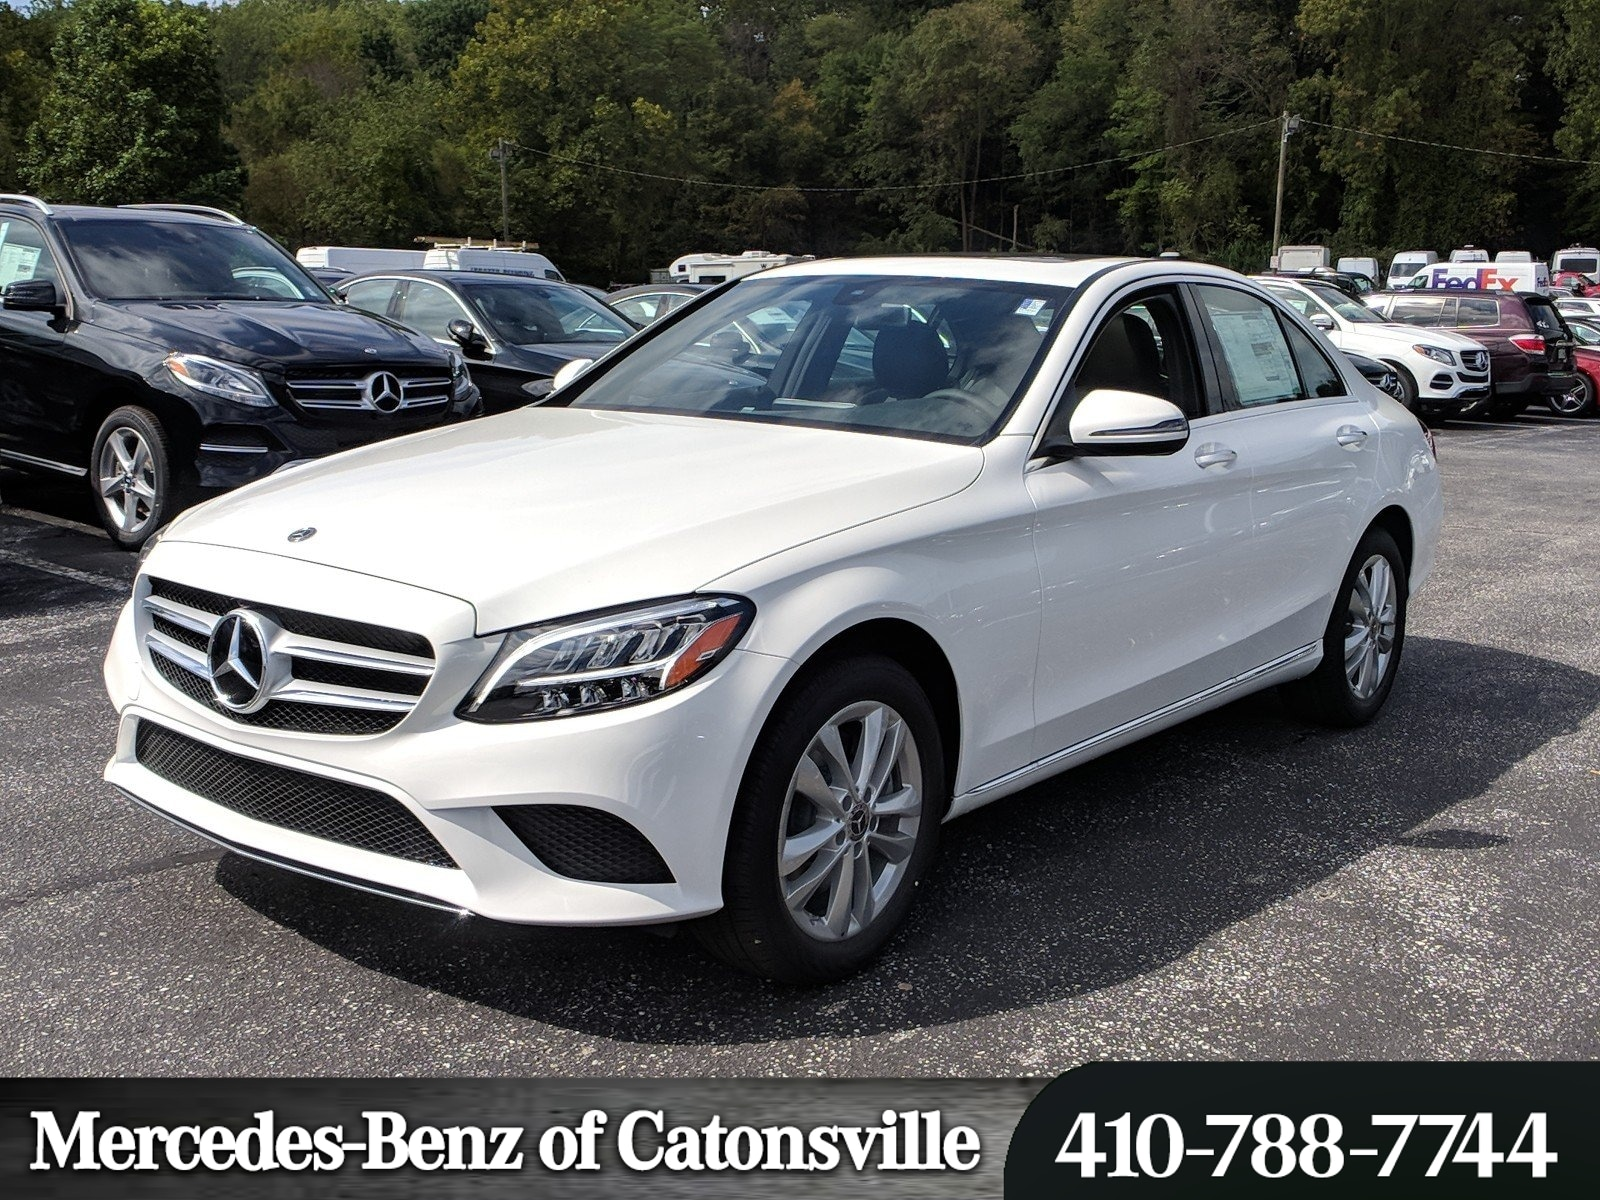 hight resolution of mercedes benzof catonsville